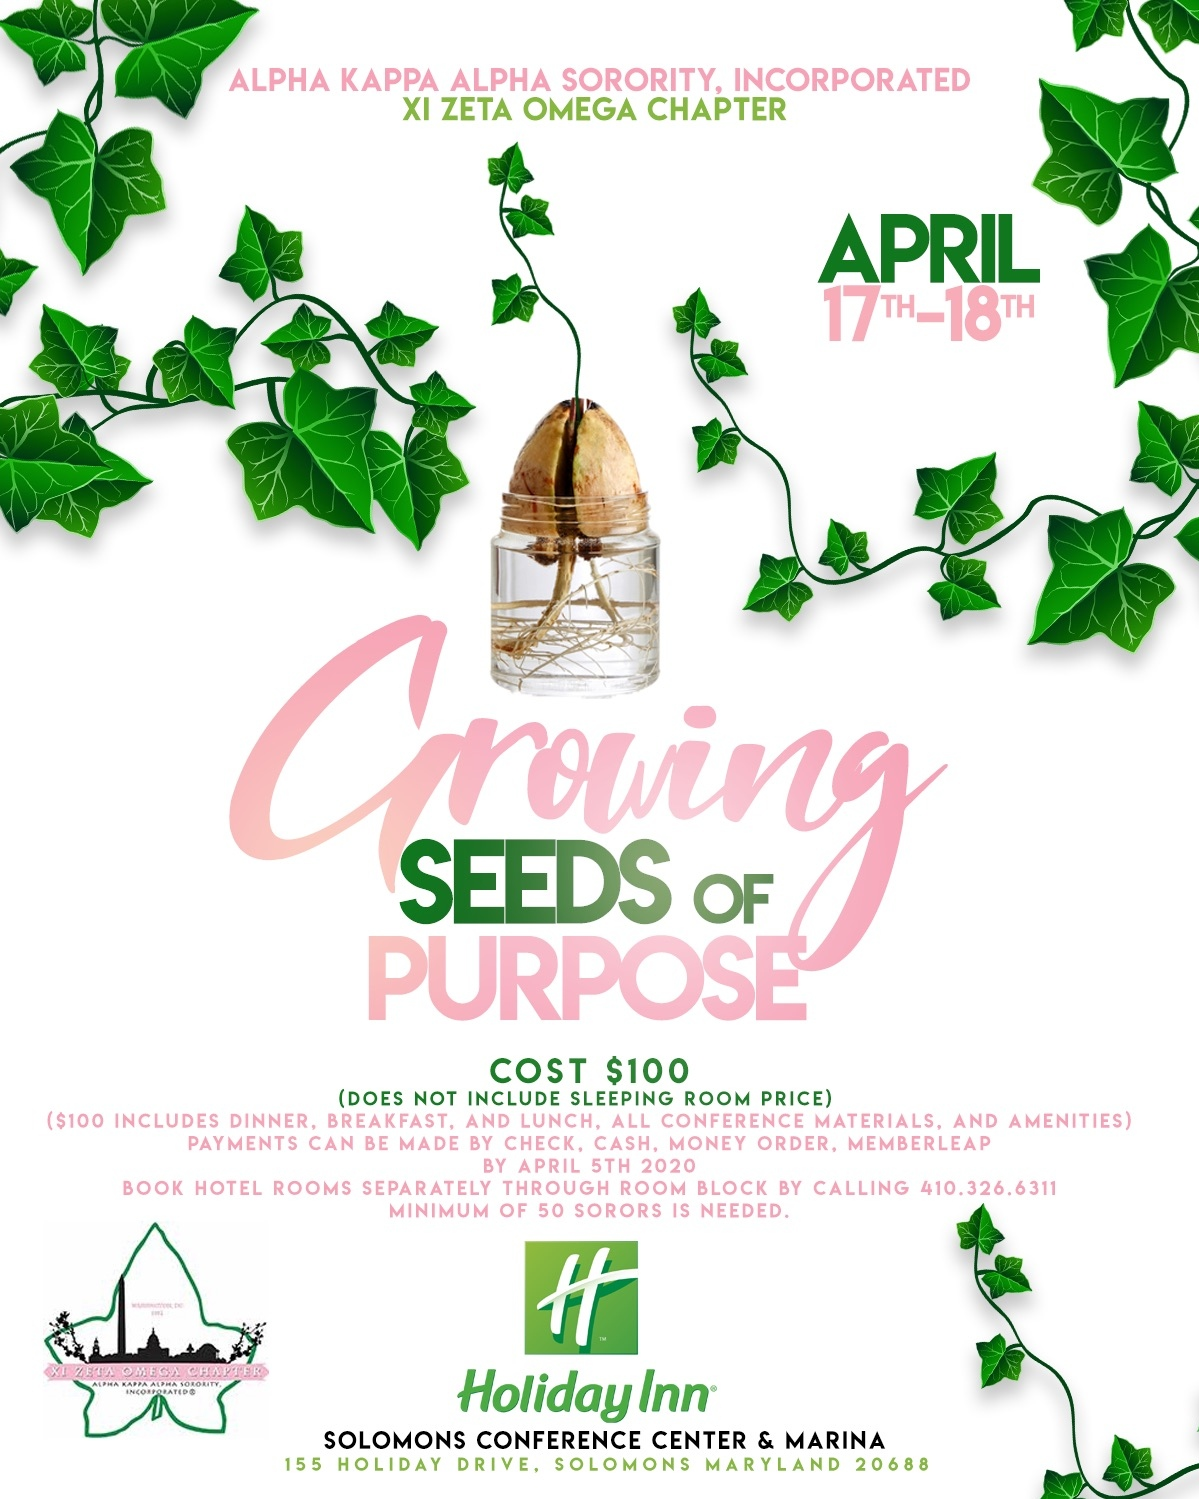 The 2020 Chapter Retreat is an event you do not want to miss. This year's theme is Growing Seeds of Purpose.